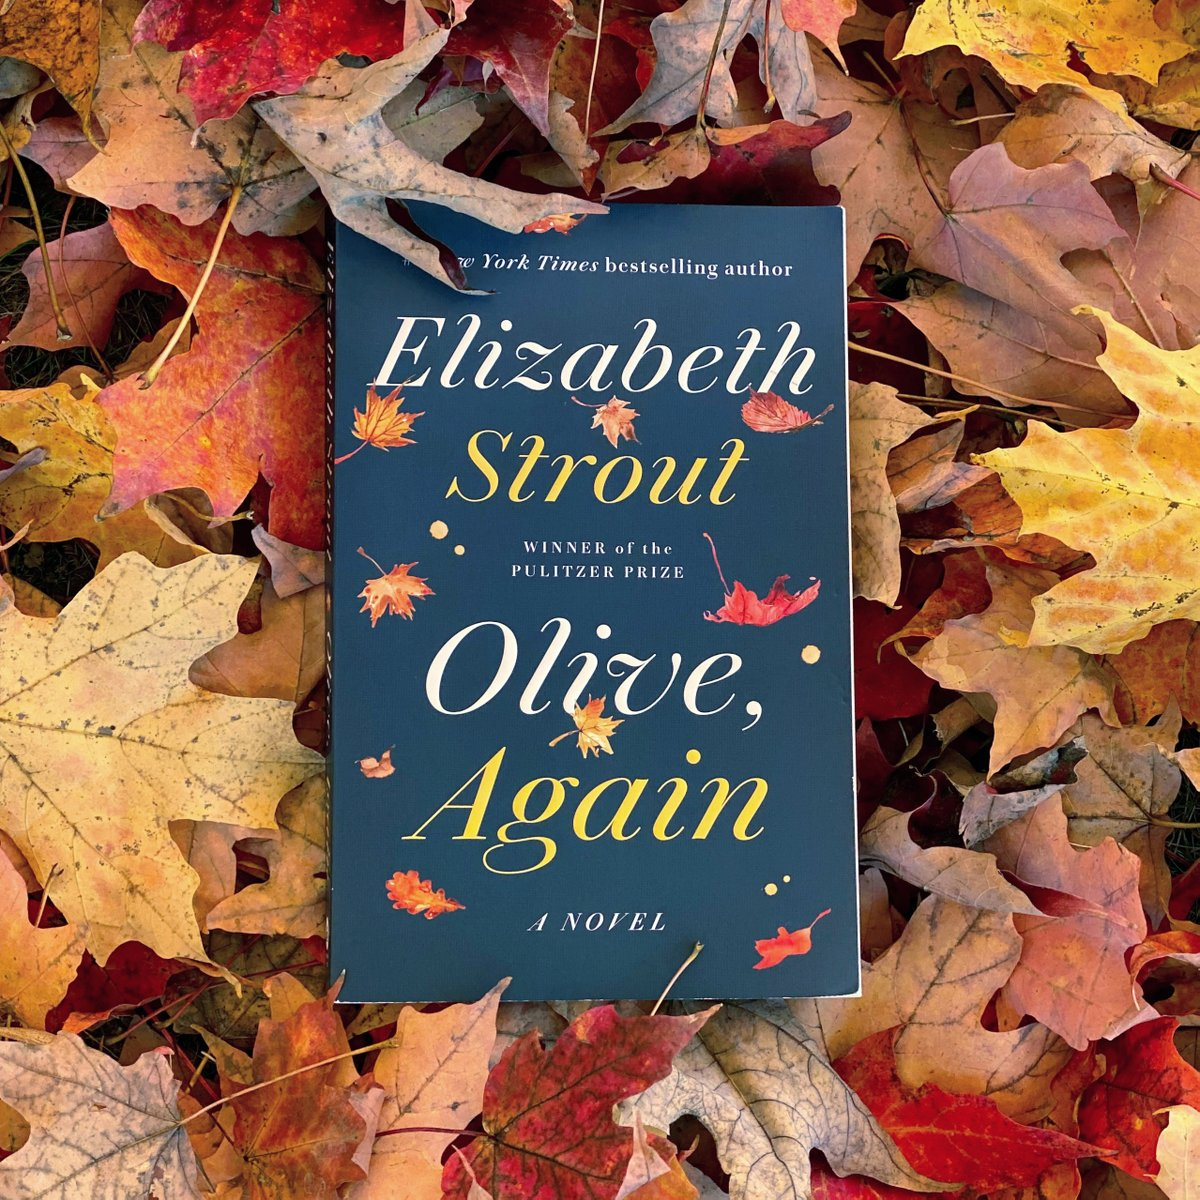 Because today wasn't eventful enough already,  OLIVE, AGAIN is now out in paperback  https://t.co/OhYq8bGa8P https://t.co/cCAuOBgo4s